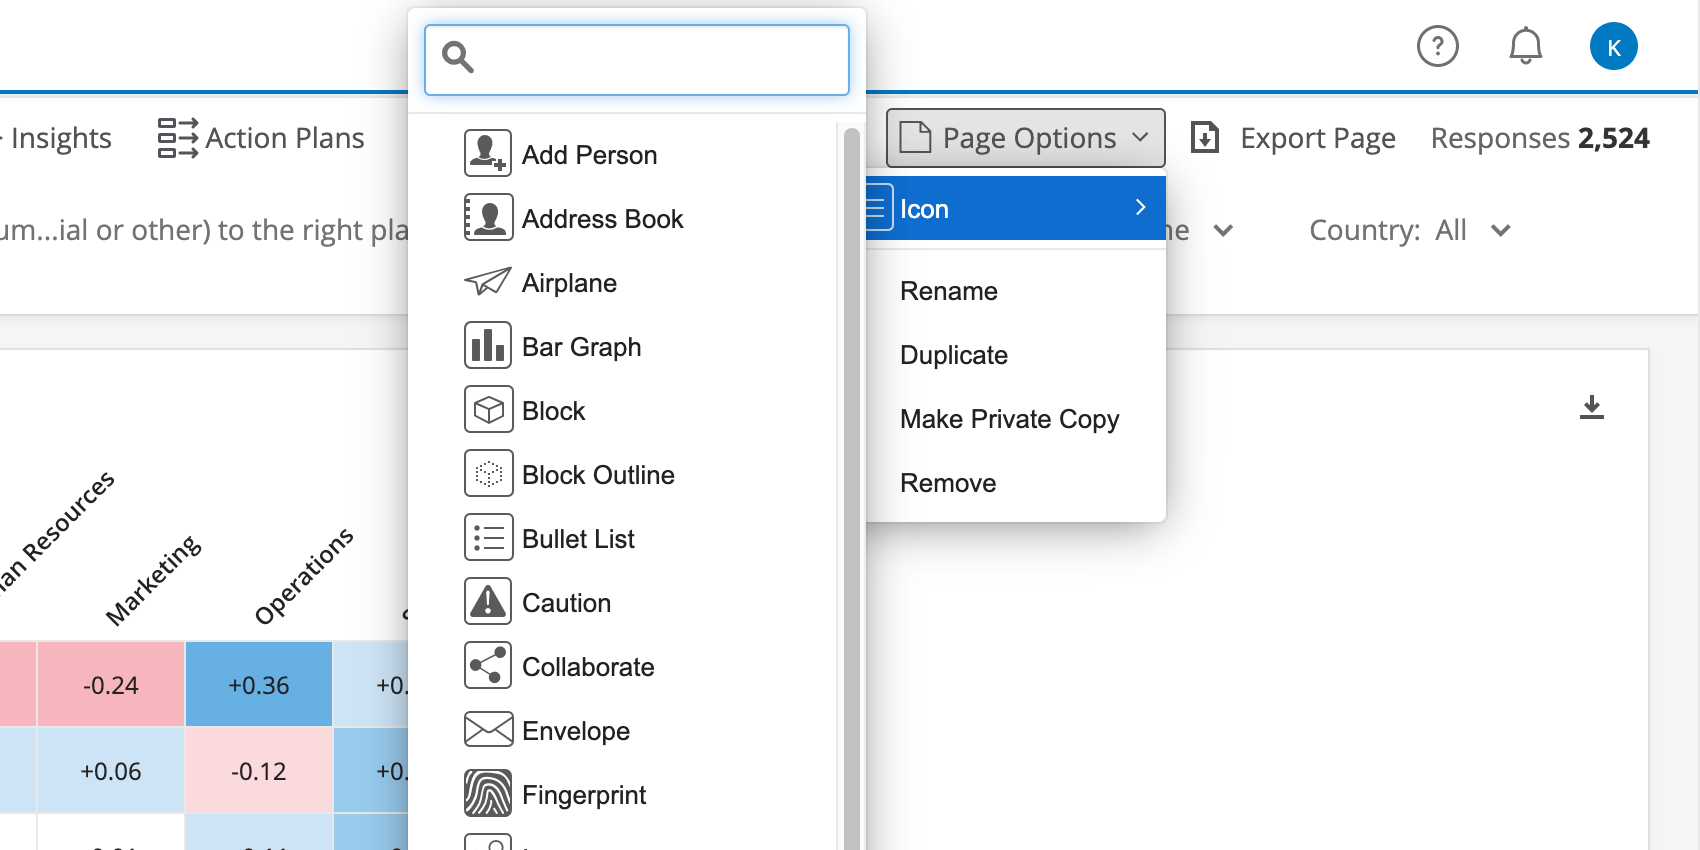 Icon top of list - when hover over, enormous list of icons appears